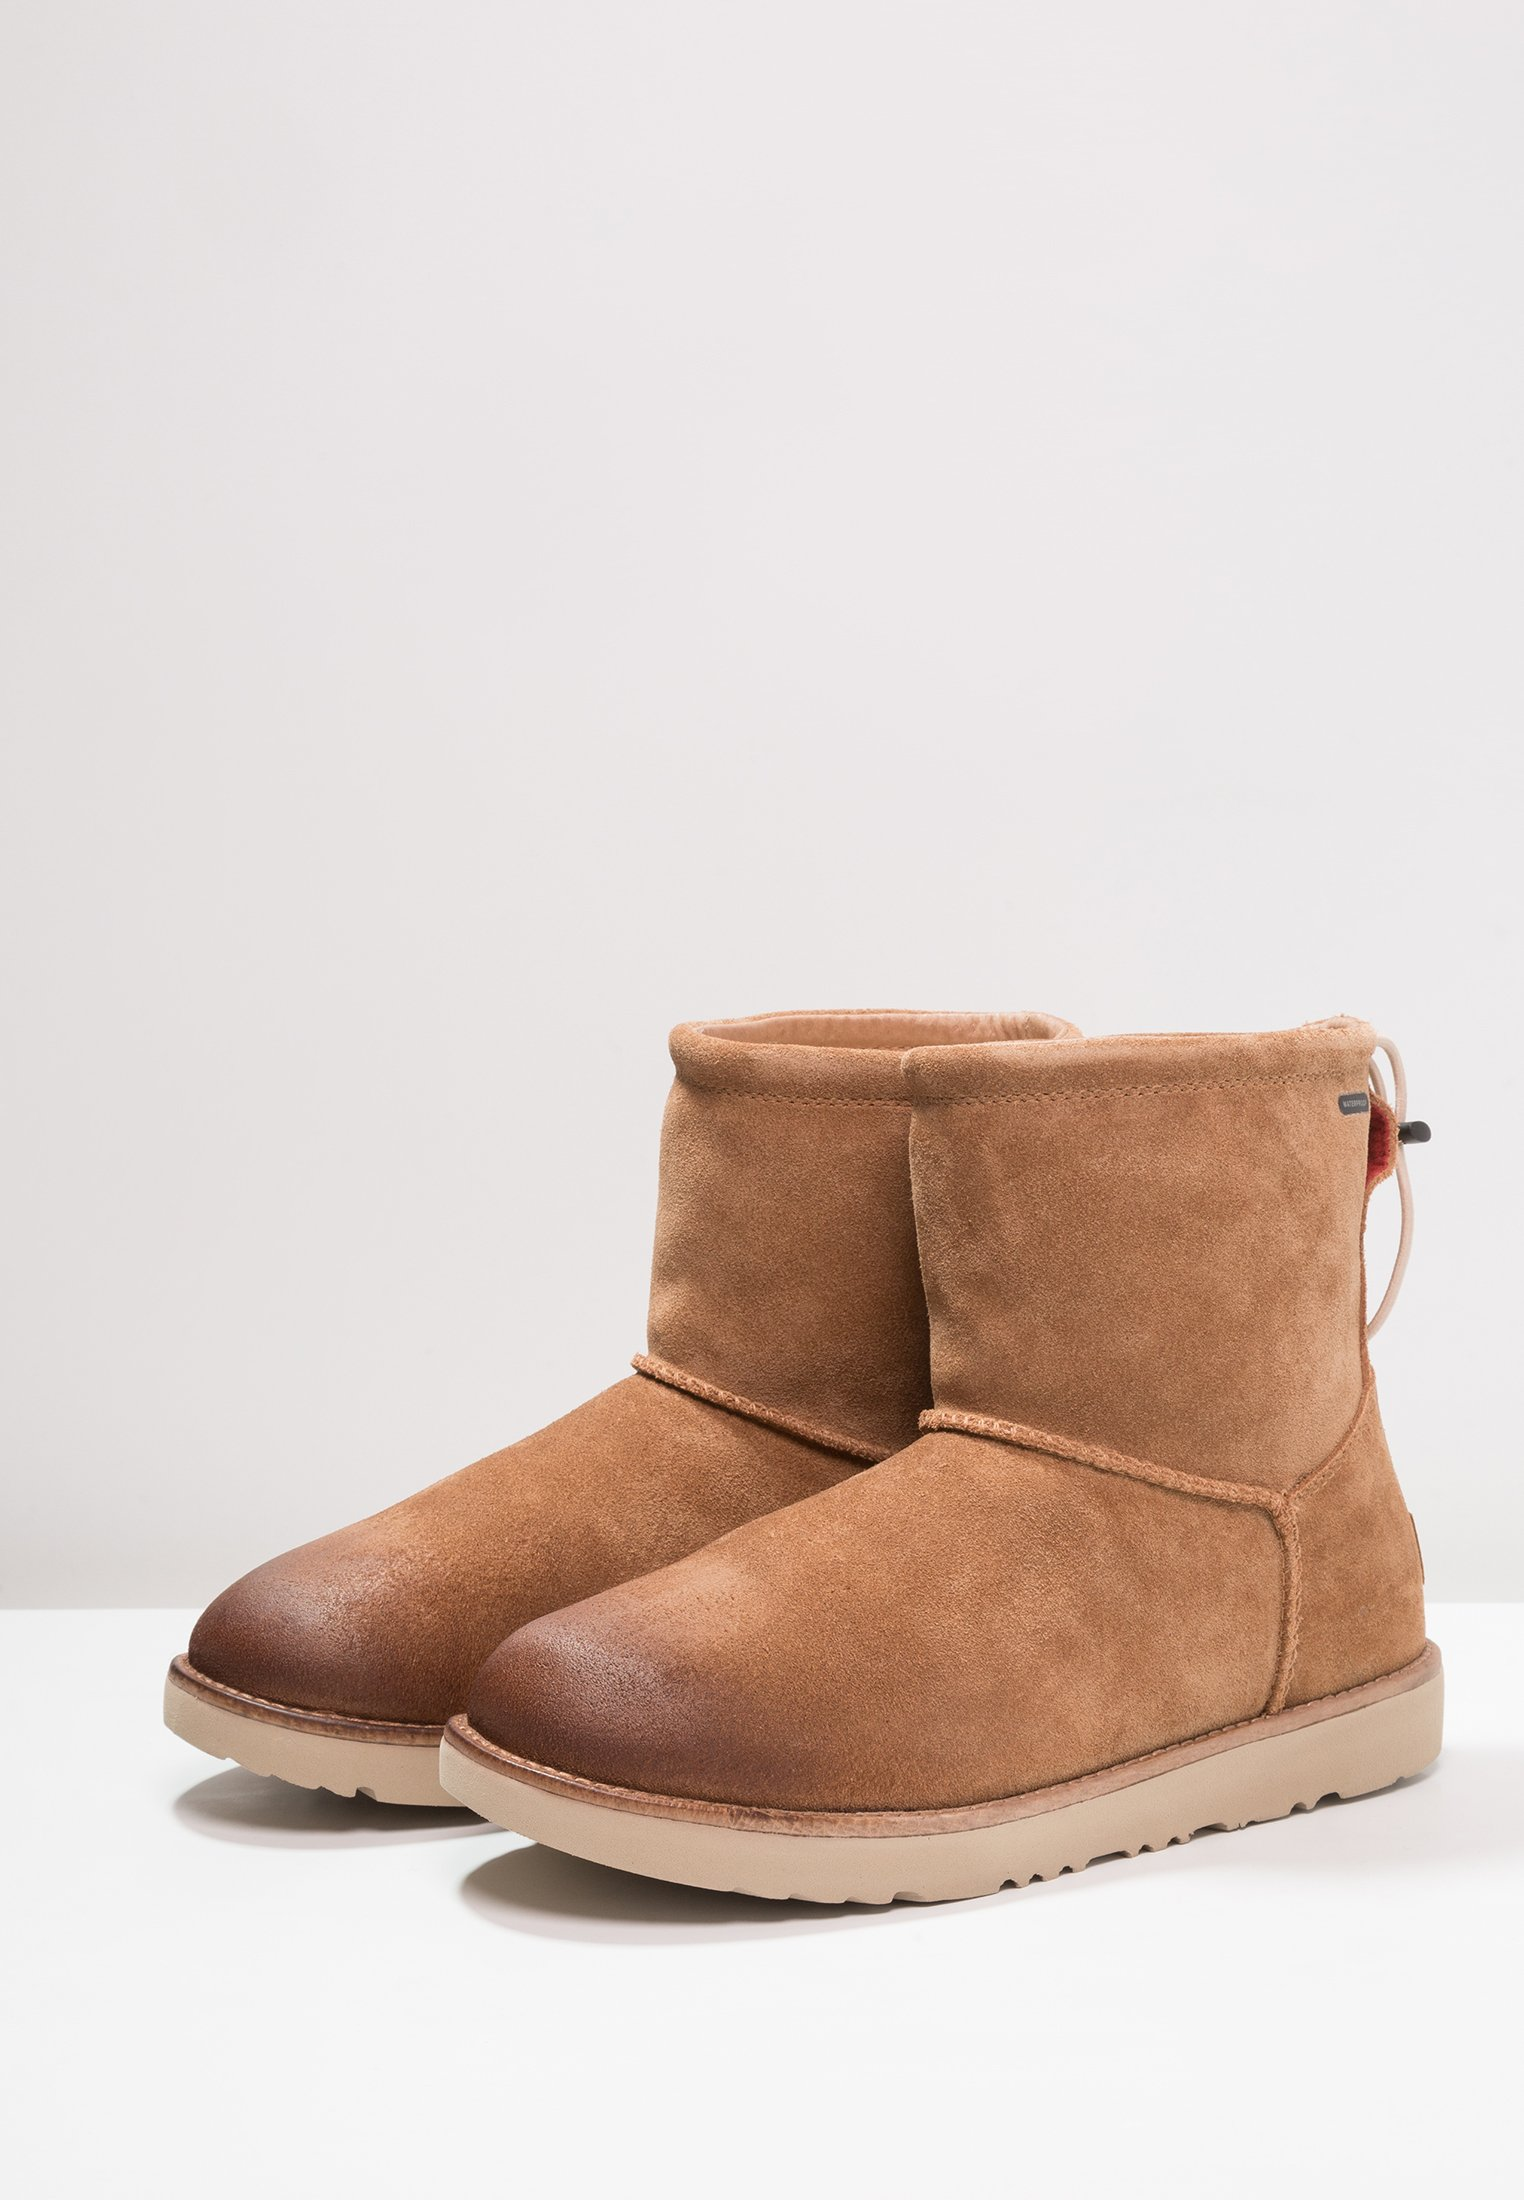 Vendibile Scarpe da uomo UGG CLASSIC TOGGLE WATERPROOF Stivali da neve  chestnut